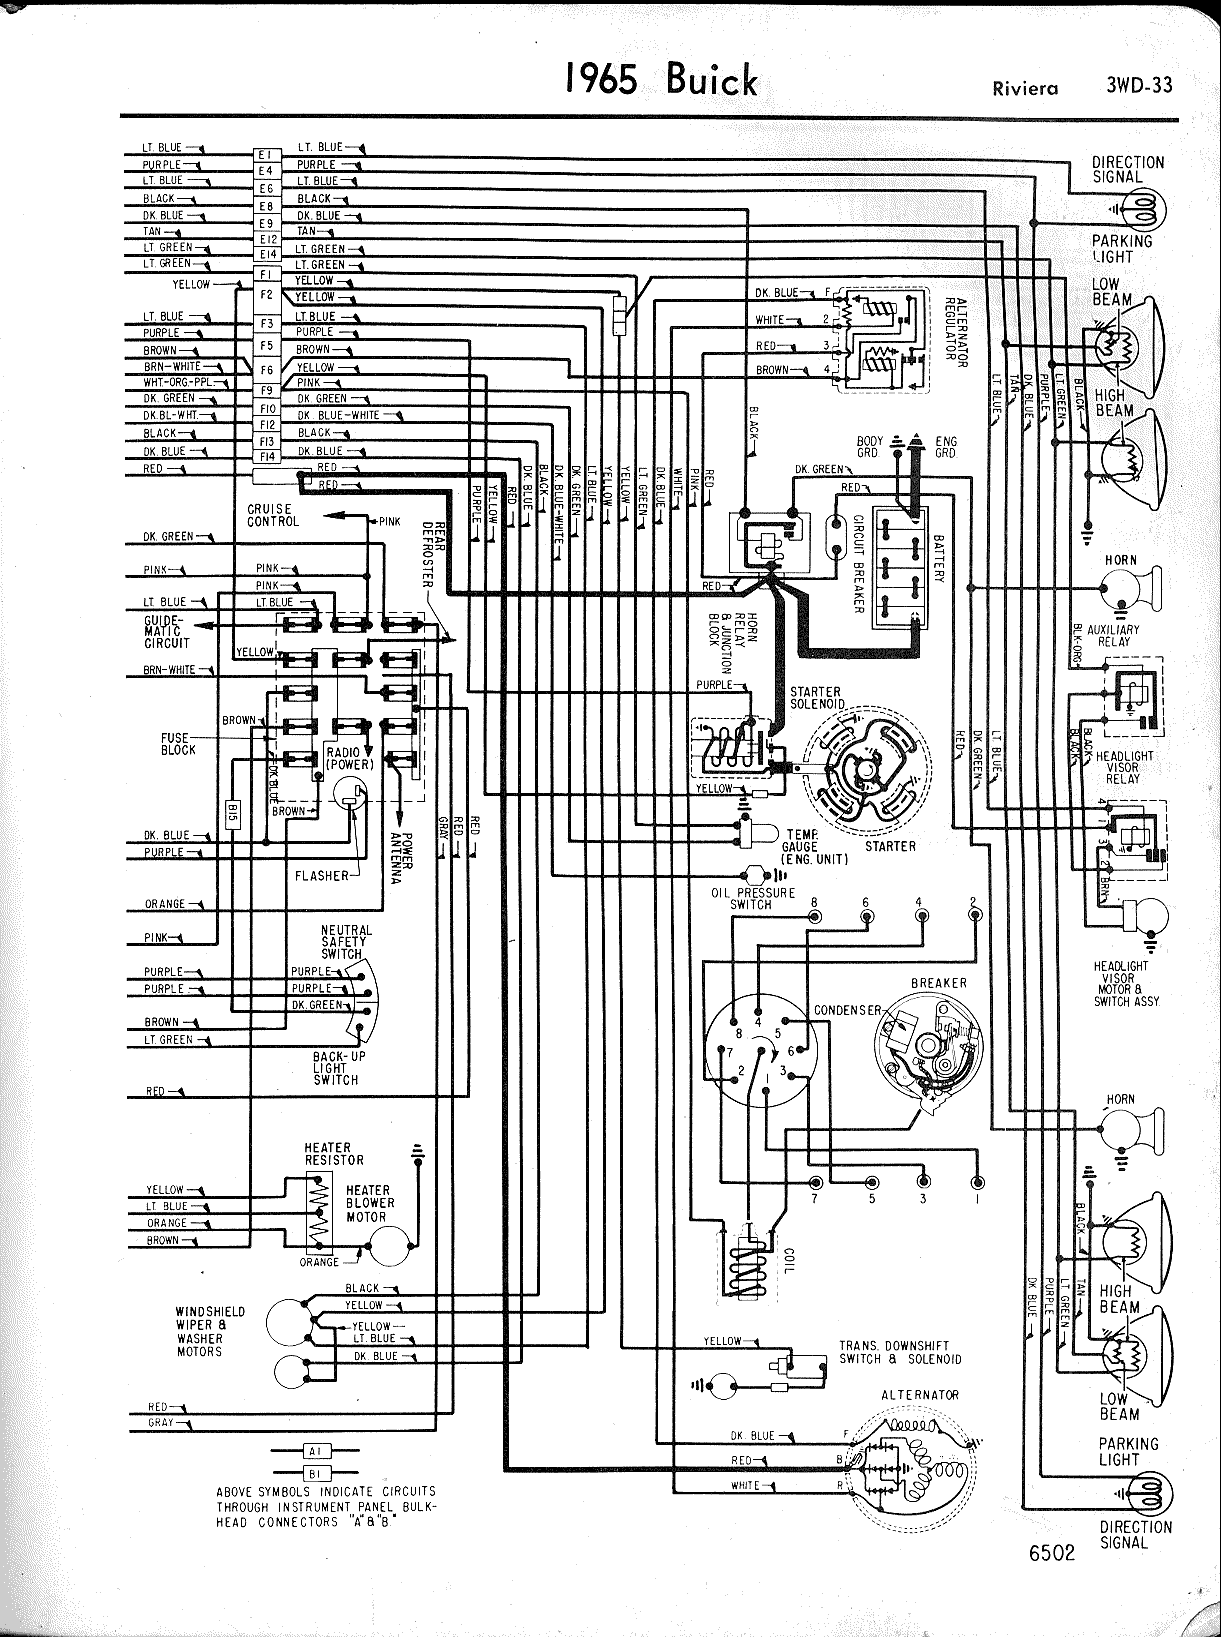 1967 Buick Skylark Fuse Box Diagram Electronic Wiring Diagrams 99 Lesabre Under Hood List Of Schematic Circuit 1994